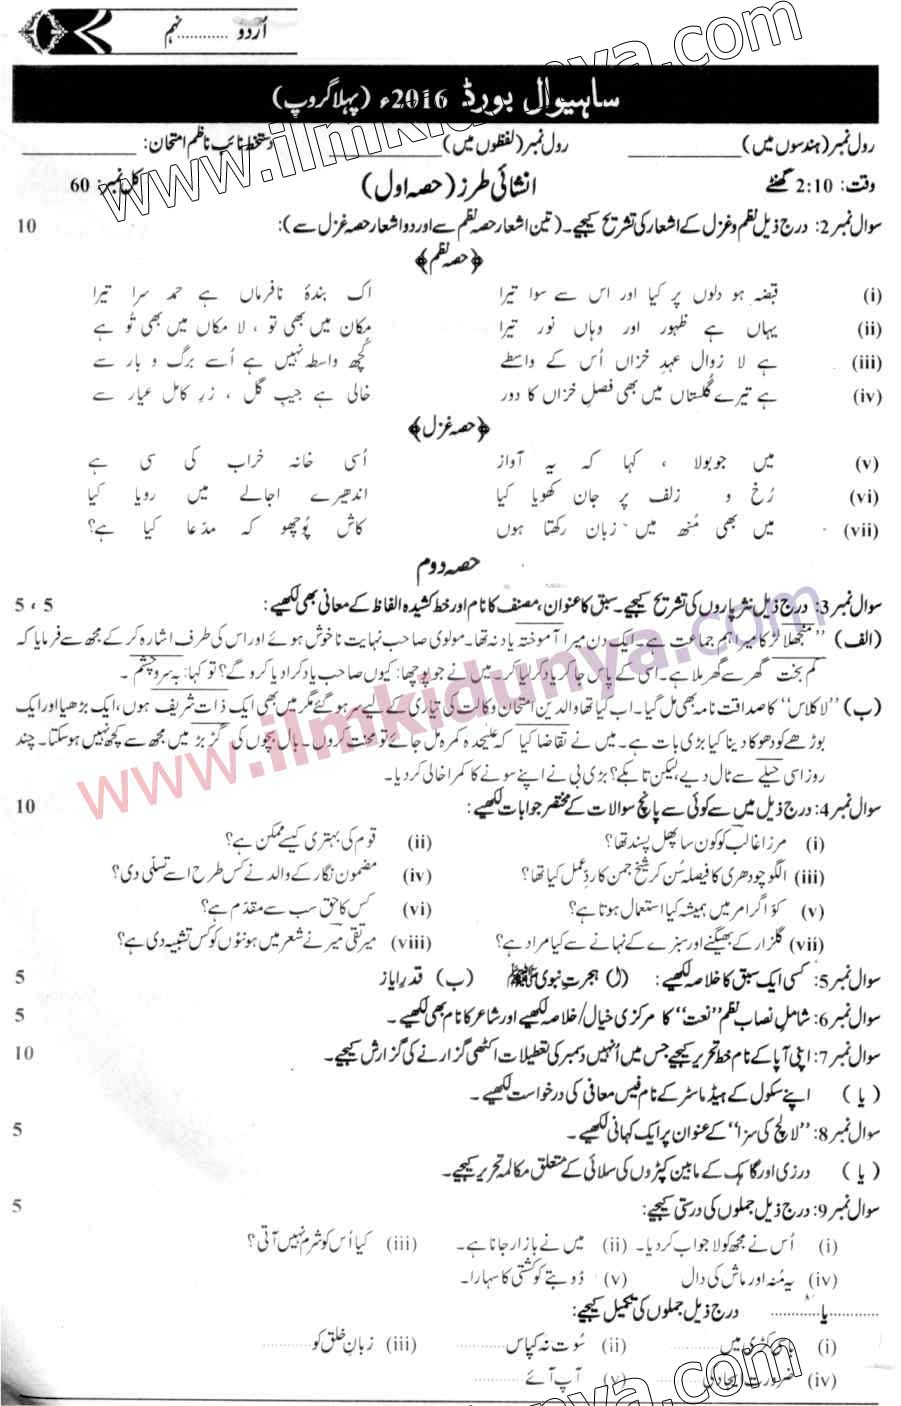 Past Papers 2016 Sahiwal Board 9th Class Urdu Group 1 Subjective